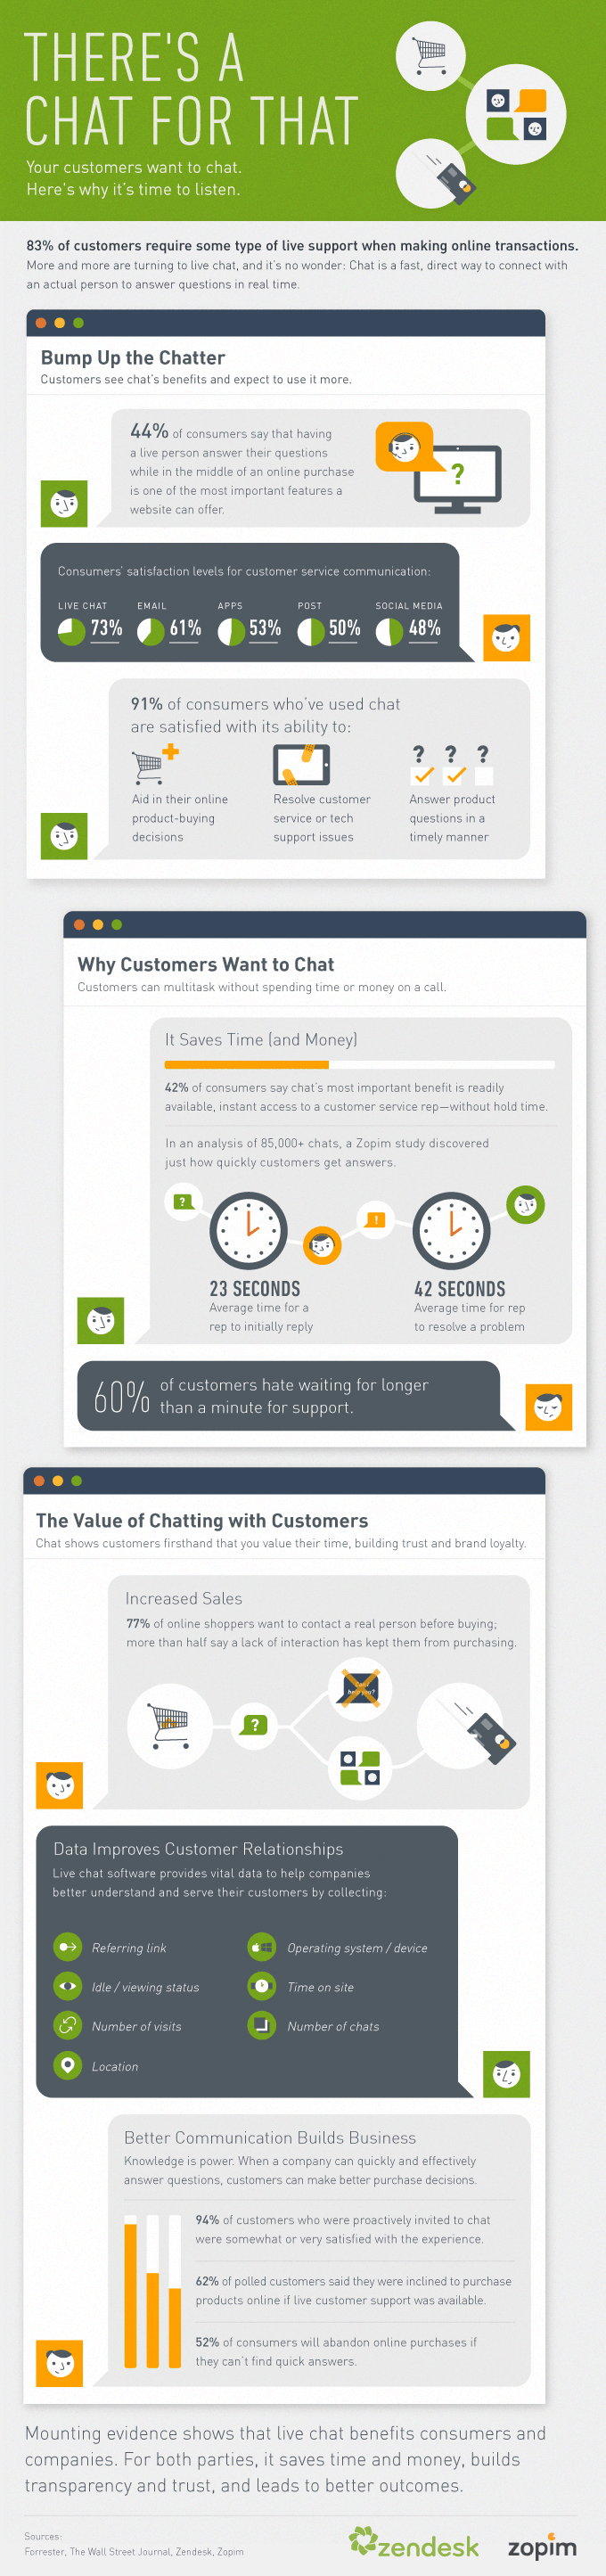 There's a chat for that [infographic]